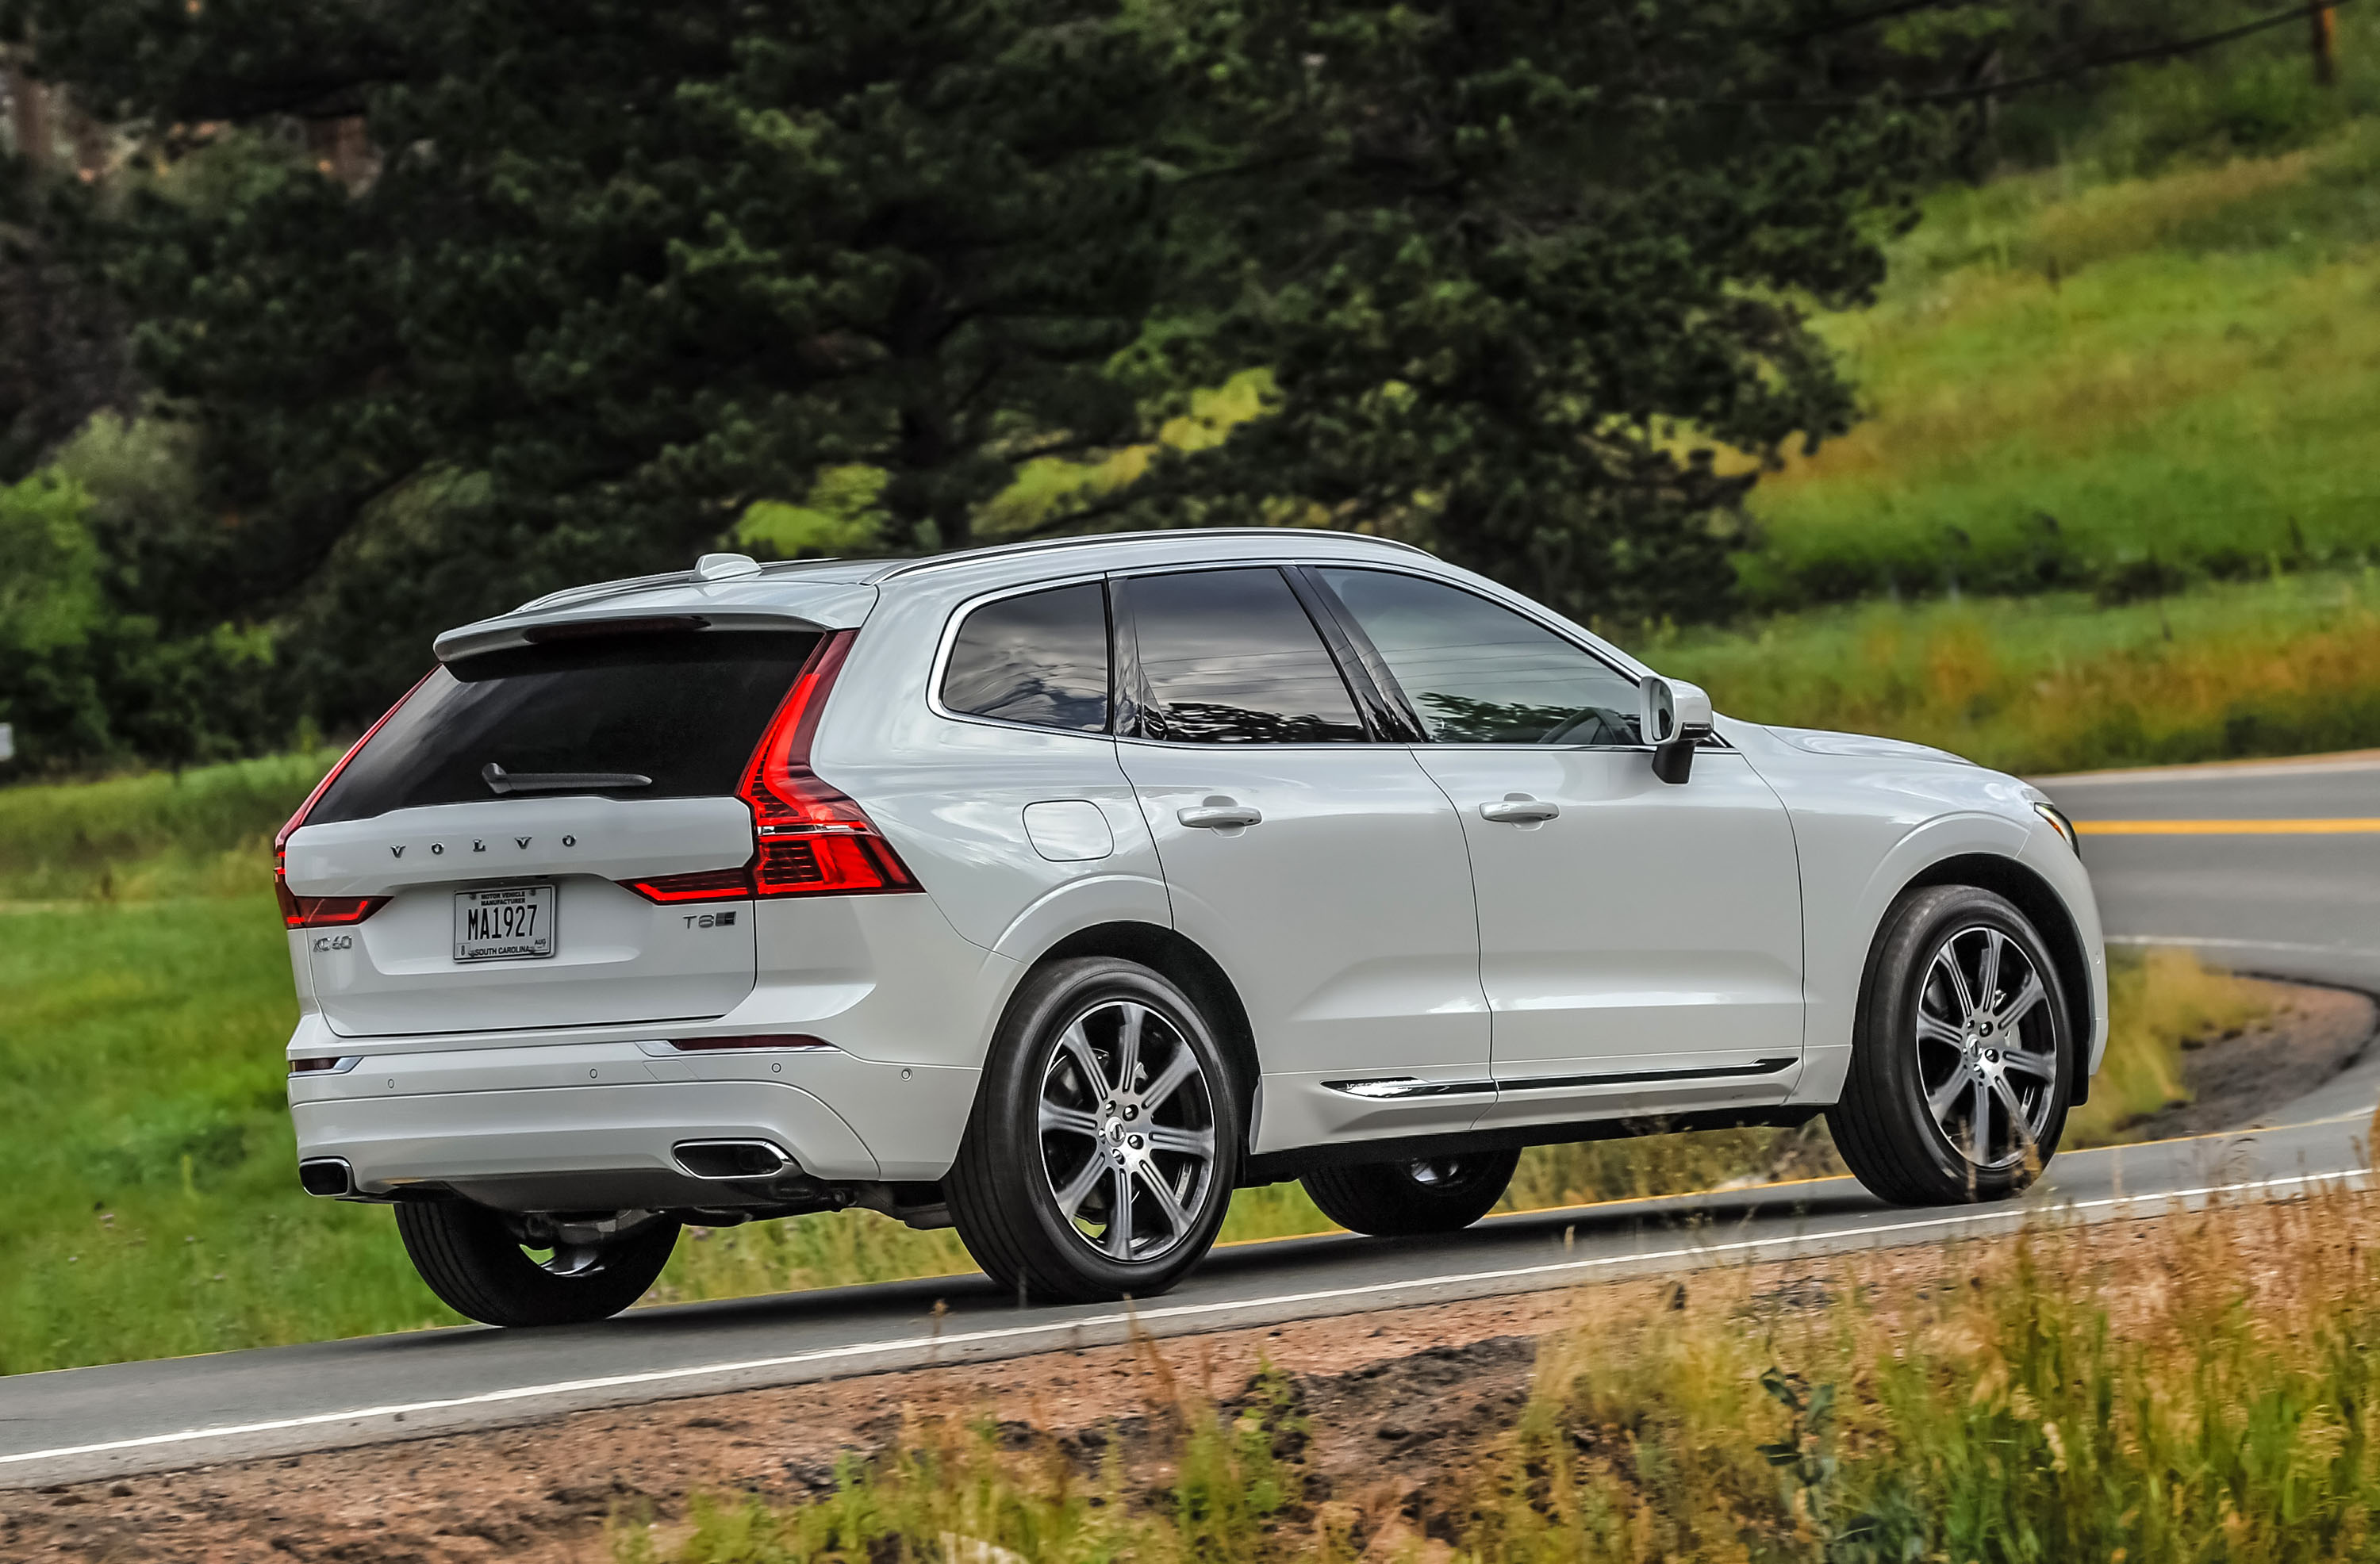 Used Toyota For Sale >> 2018 Volvo XC60 T8 first drive review: The accidental performance crossover